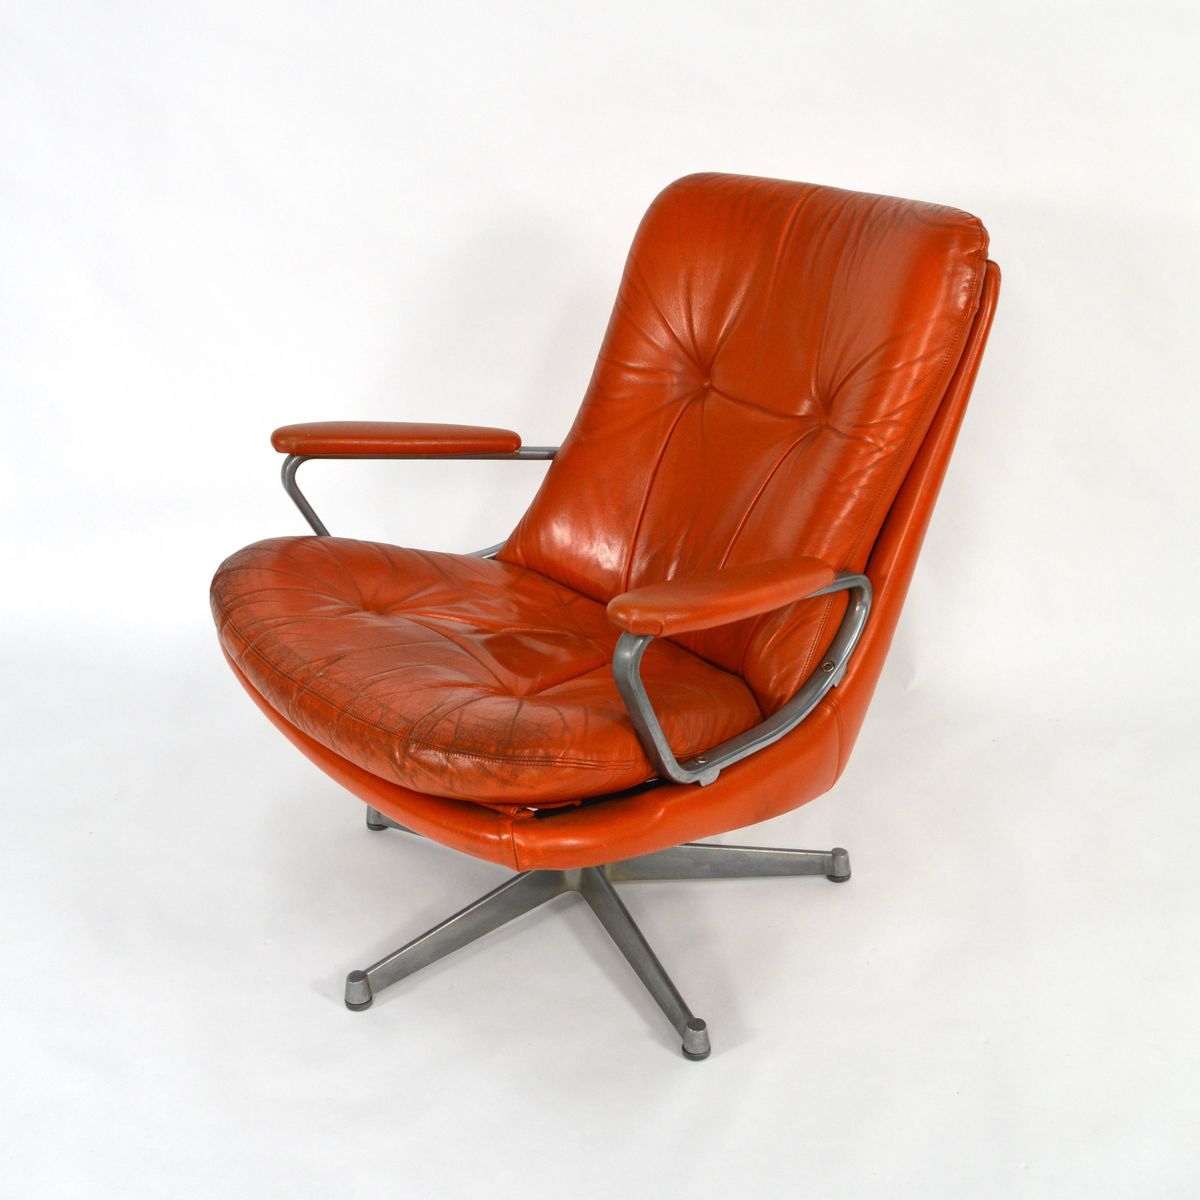 Swiss Swivel Lounge Chair by Andre Vandenbeuck for Strässle 1960s for sale a